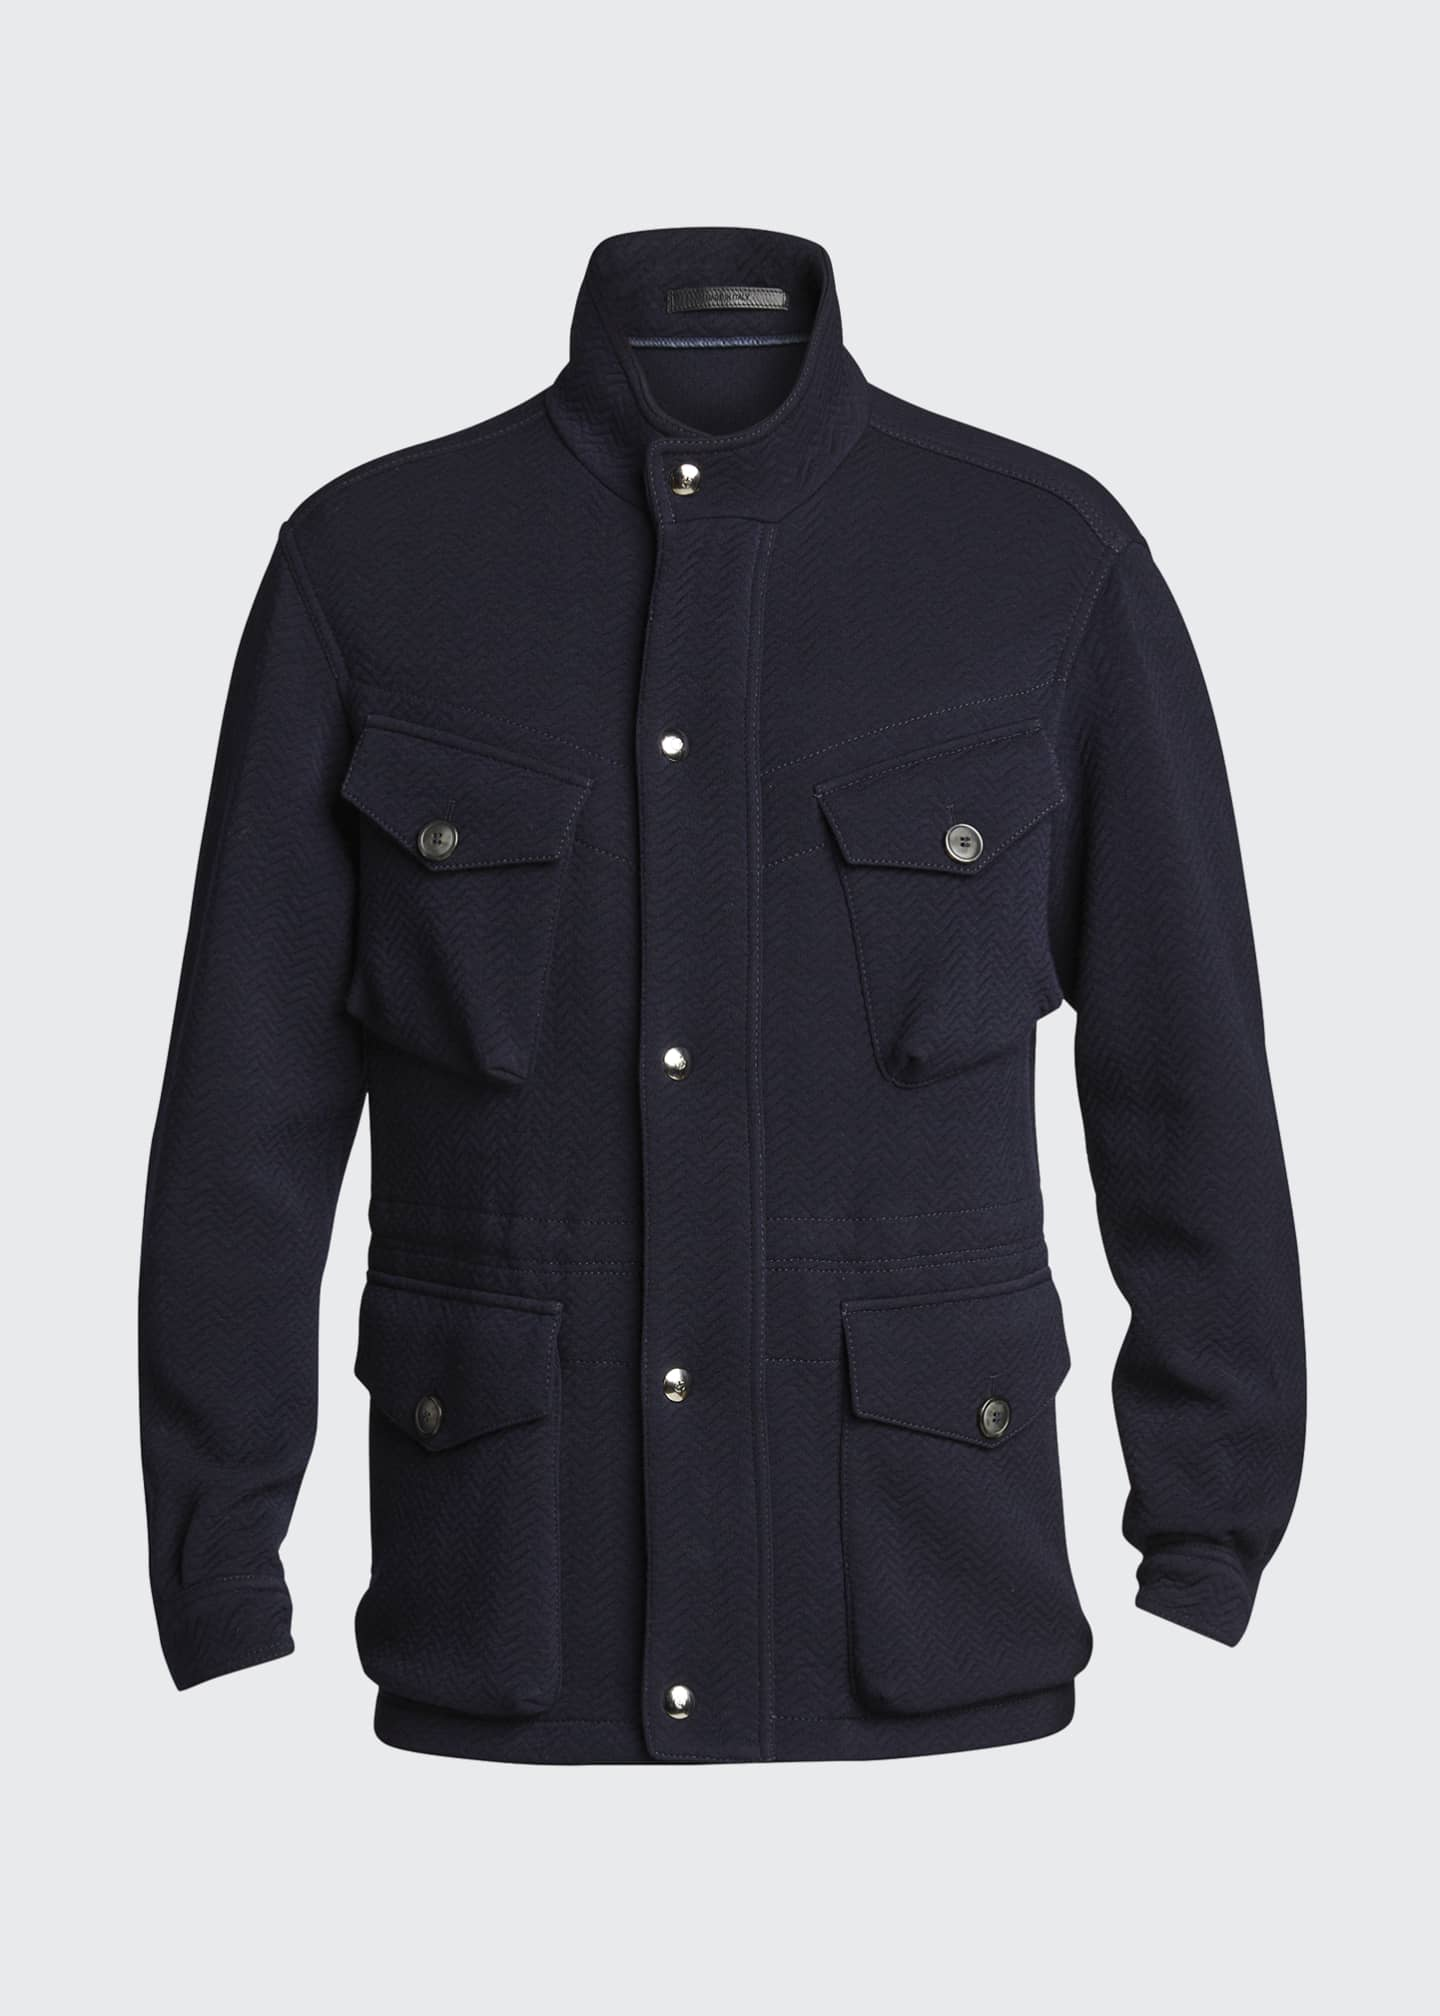 Image 5 of 5: Men's Herringbone Wool-Blend Field Jacket